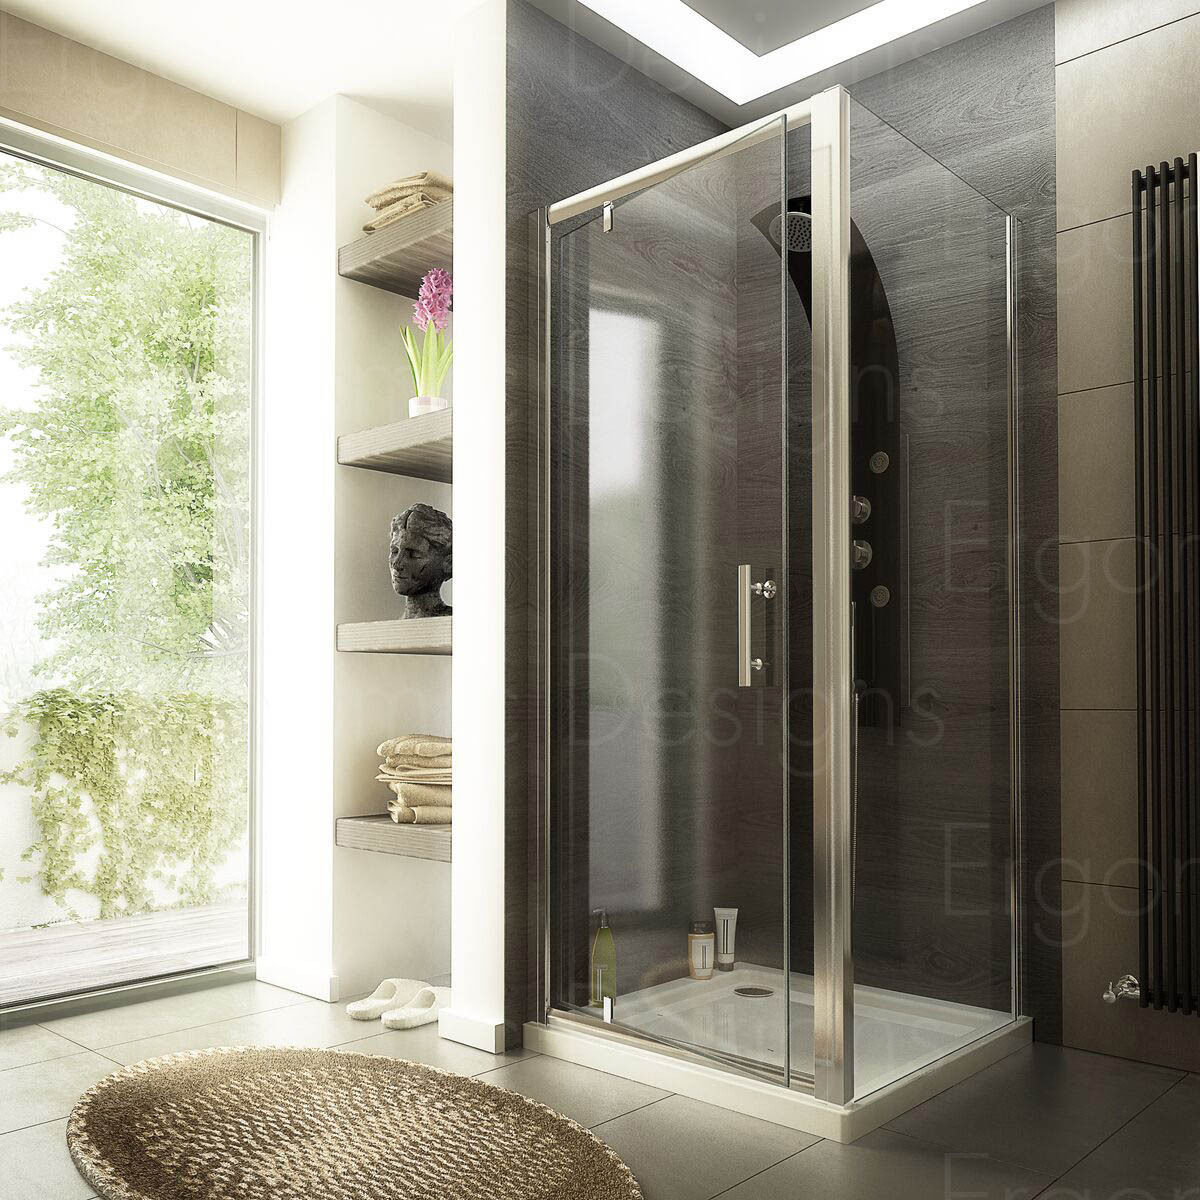 How To Choose A Right Shower Door For Your Bathroom